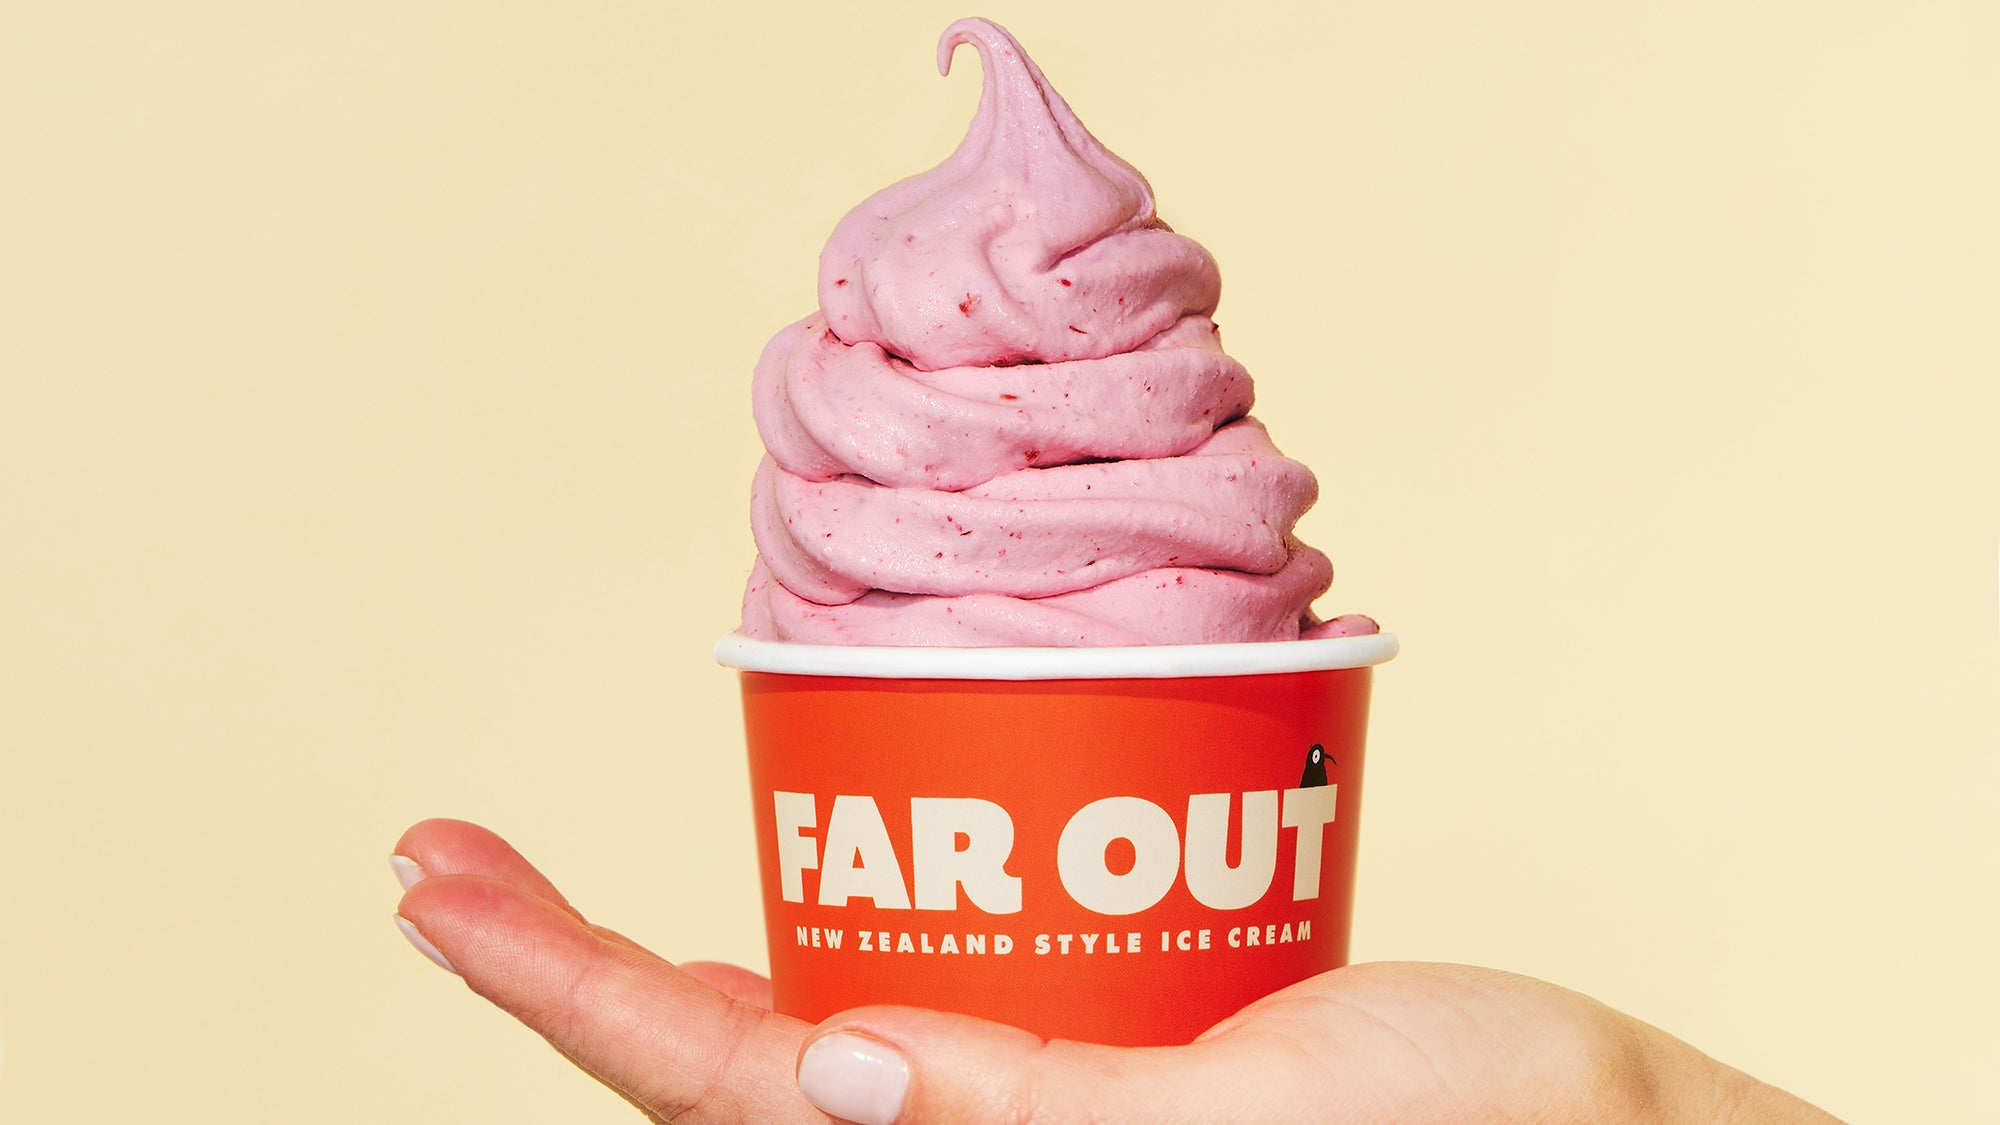 Cup of raspberry ice cream at Far Out